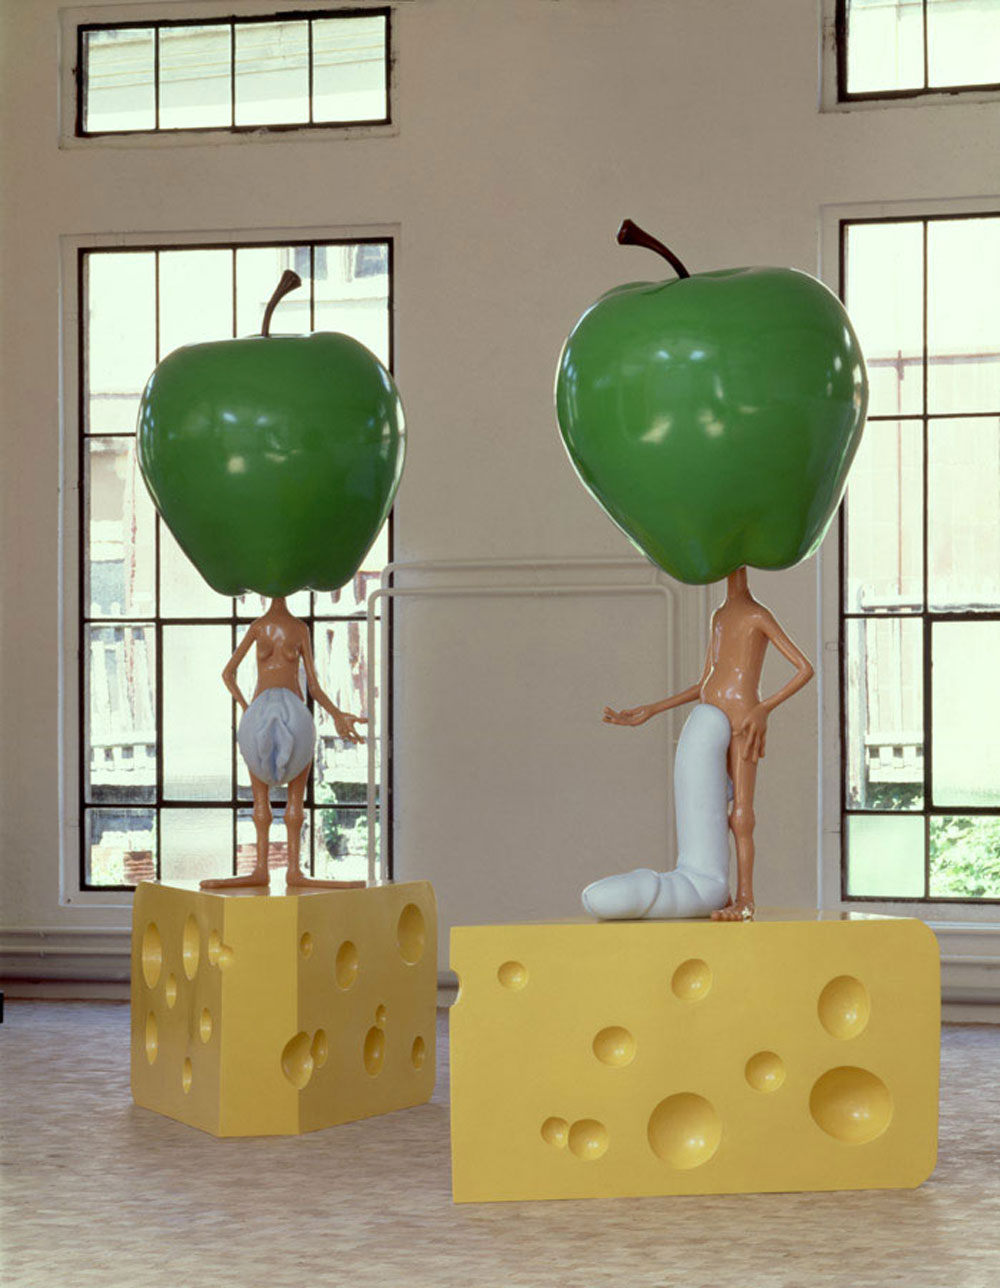 Appleheads-(on-Swiss-cheese),-1998